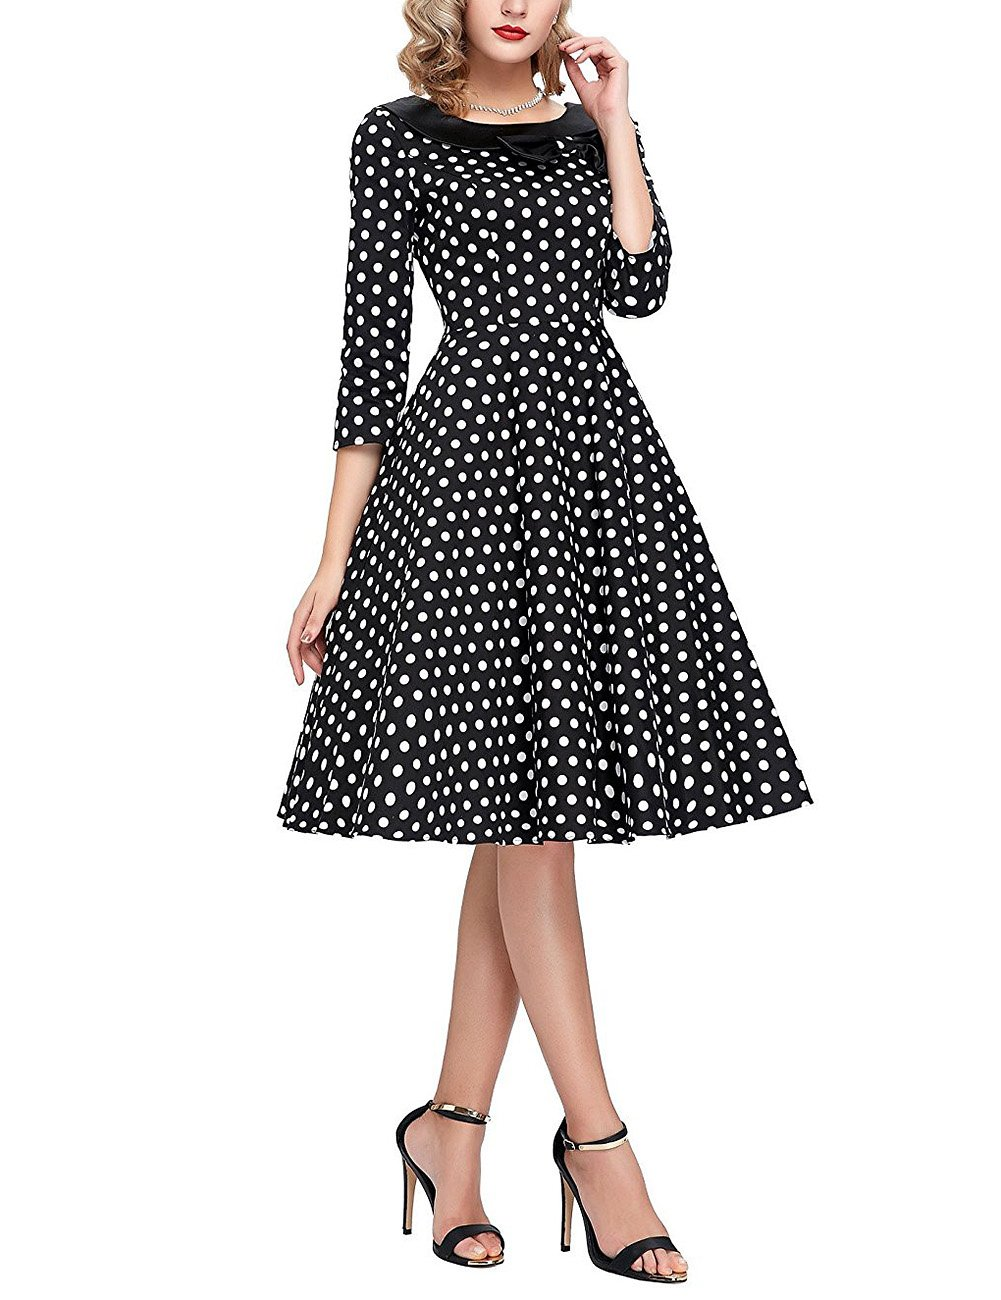 GlorySunshine Women's Vintage Swing Polka Dot Dress 3